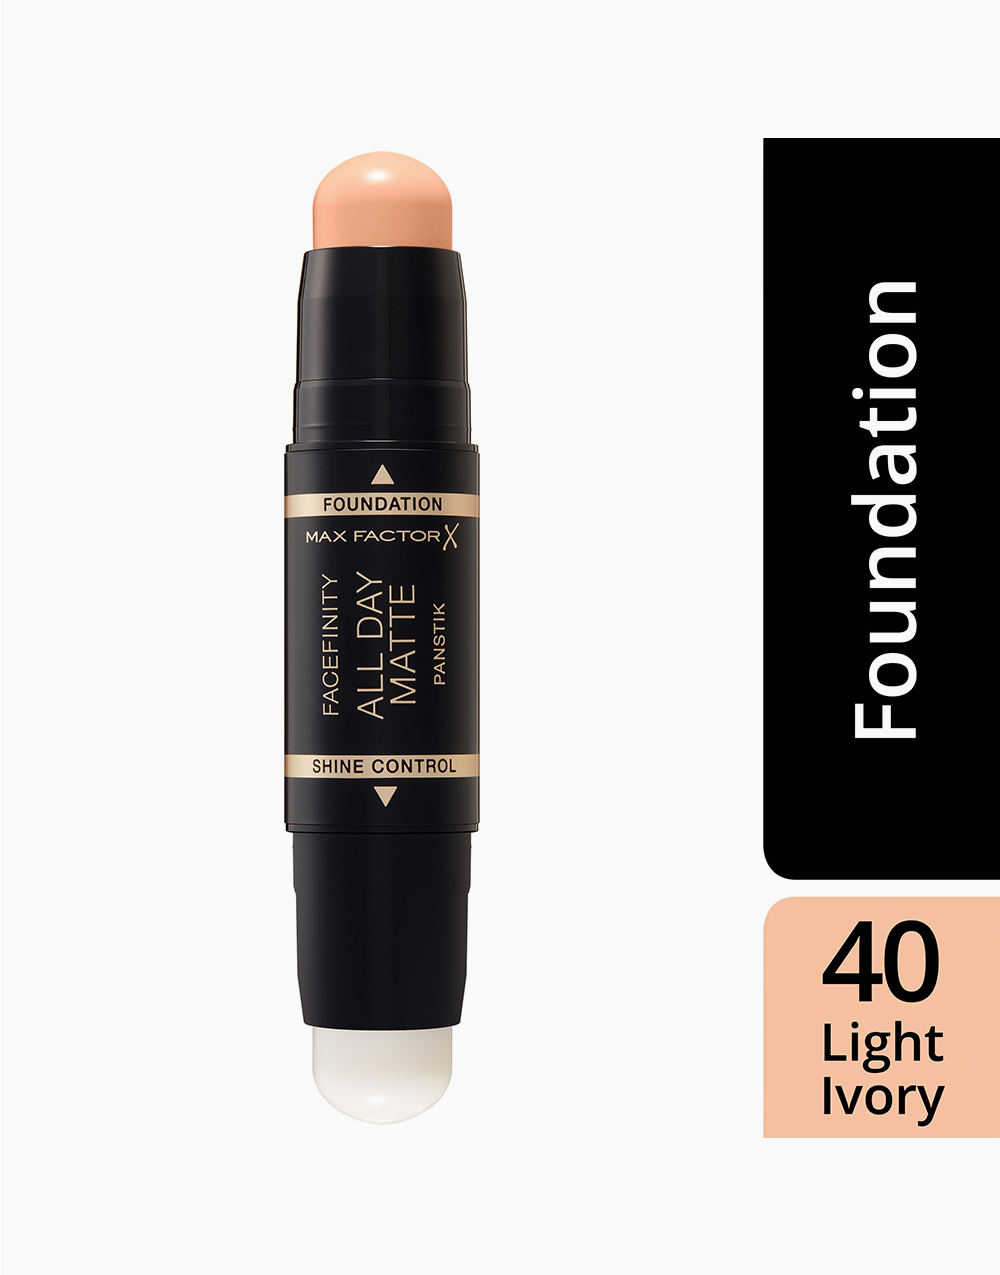 Facefinity All Day Matte Panstik by Max Factor | Light Ivory